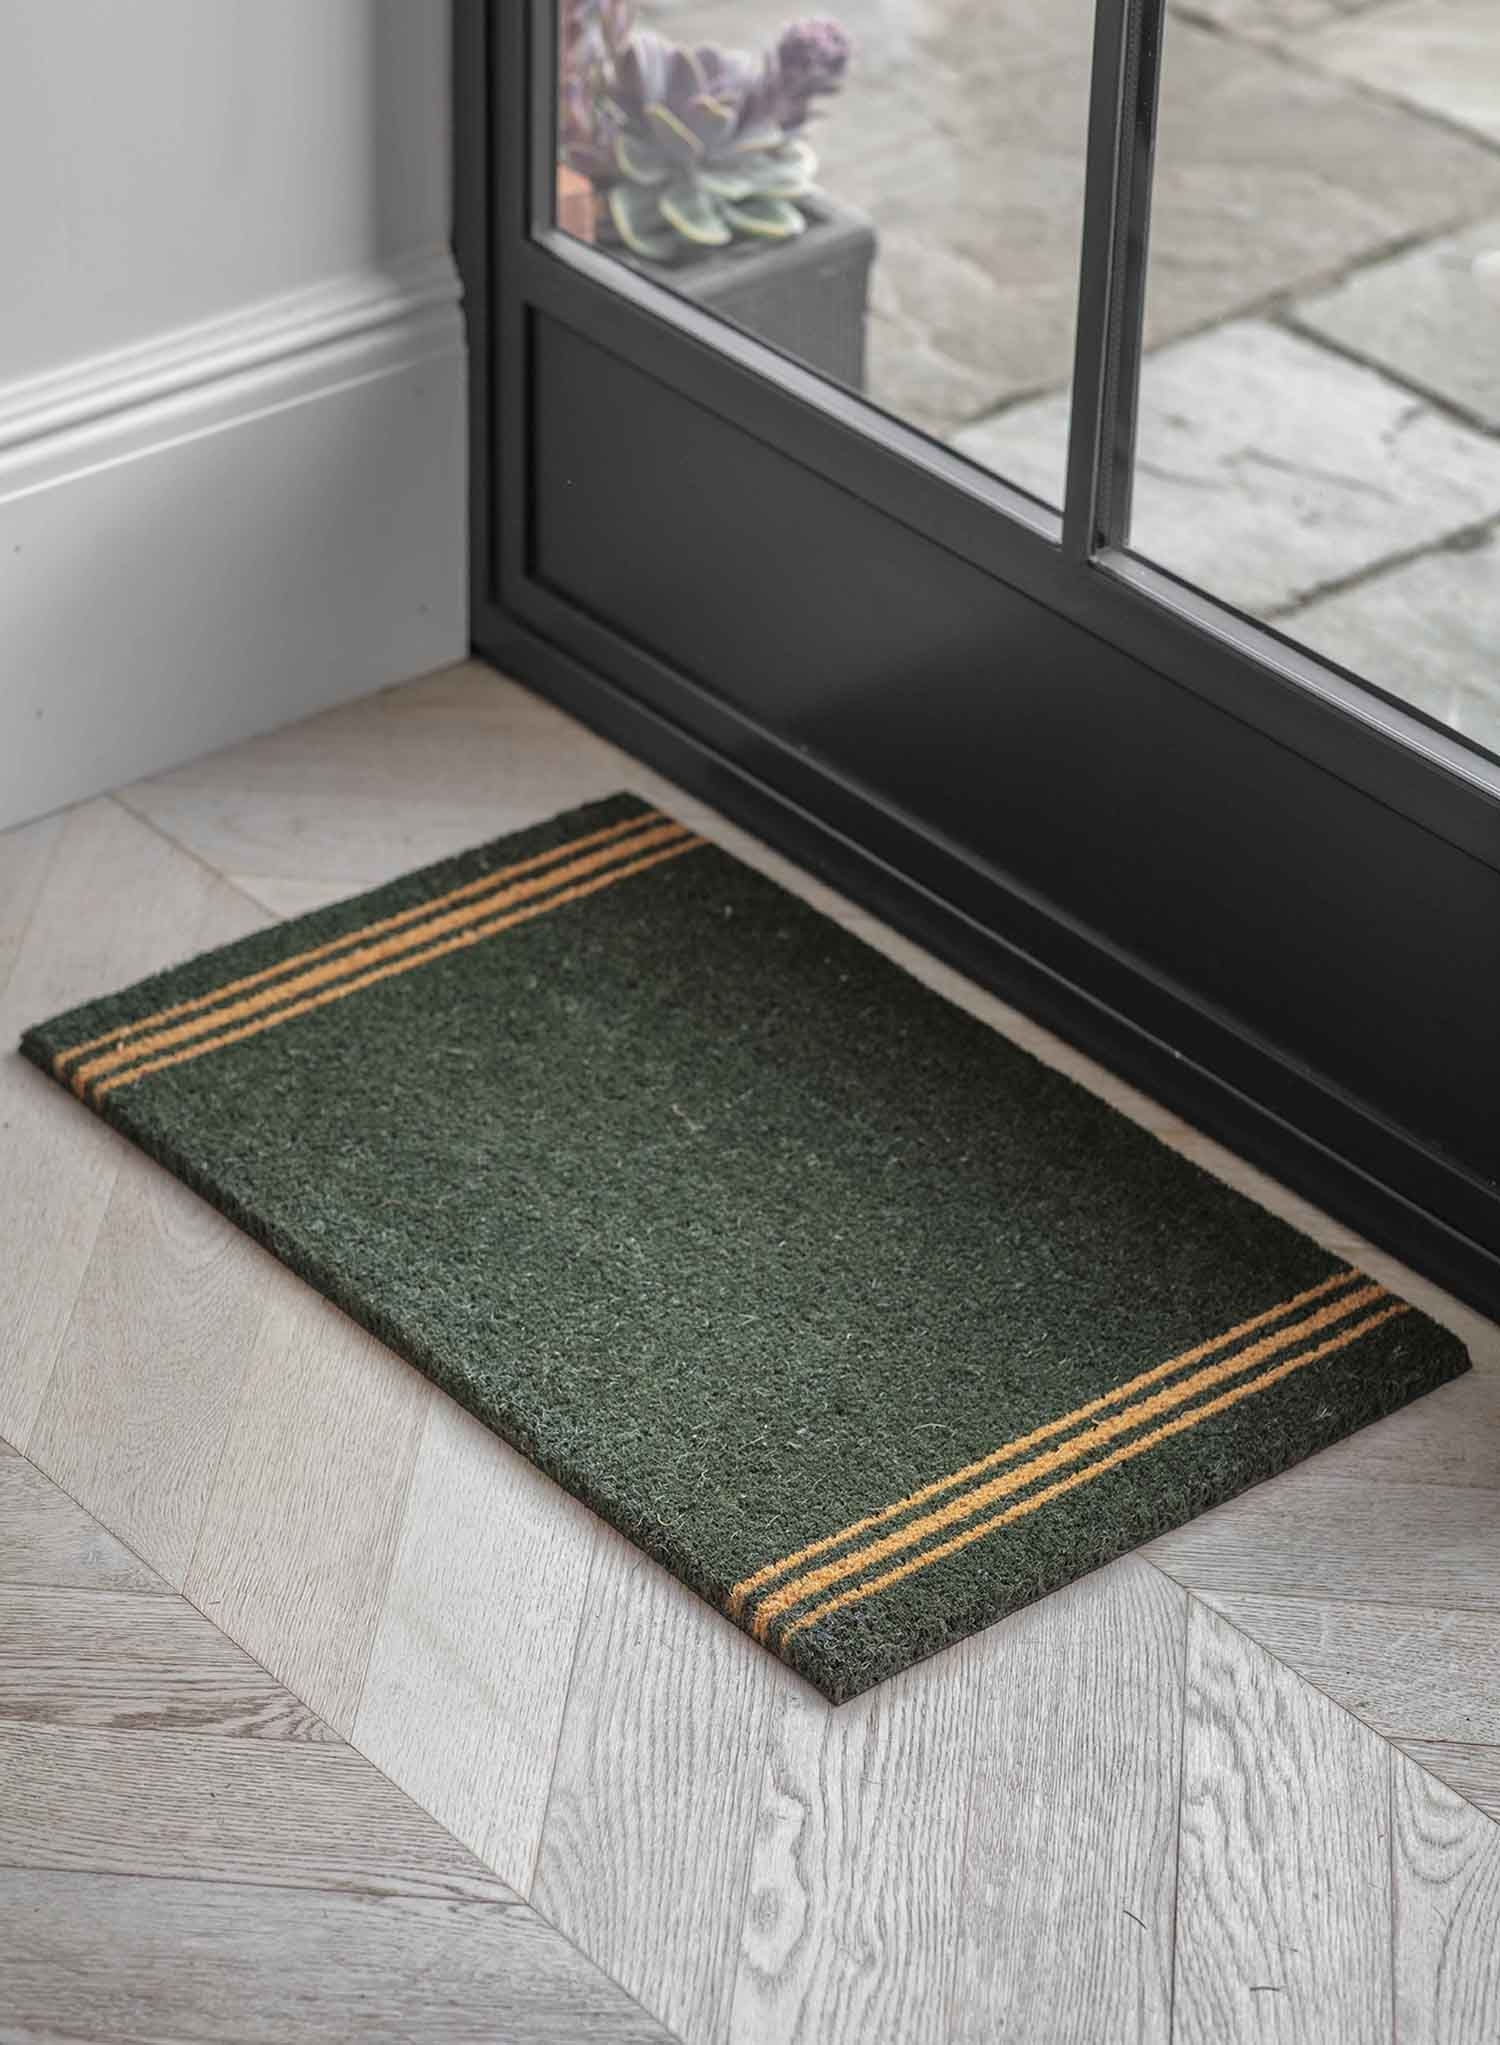 Image of Garden Trading Small Triple Stripe Doormat, Forest Green